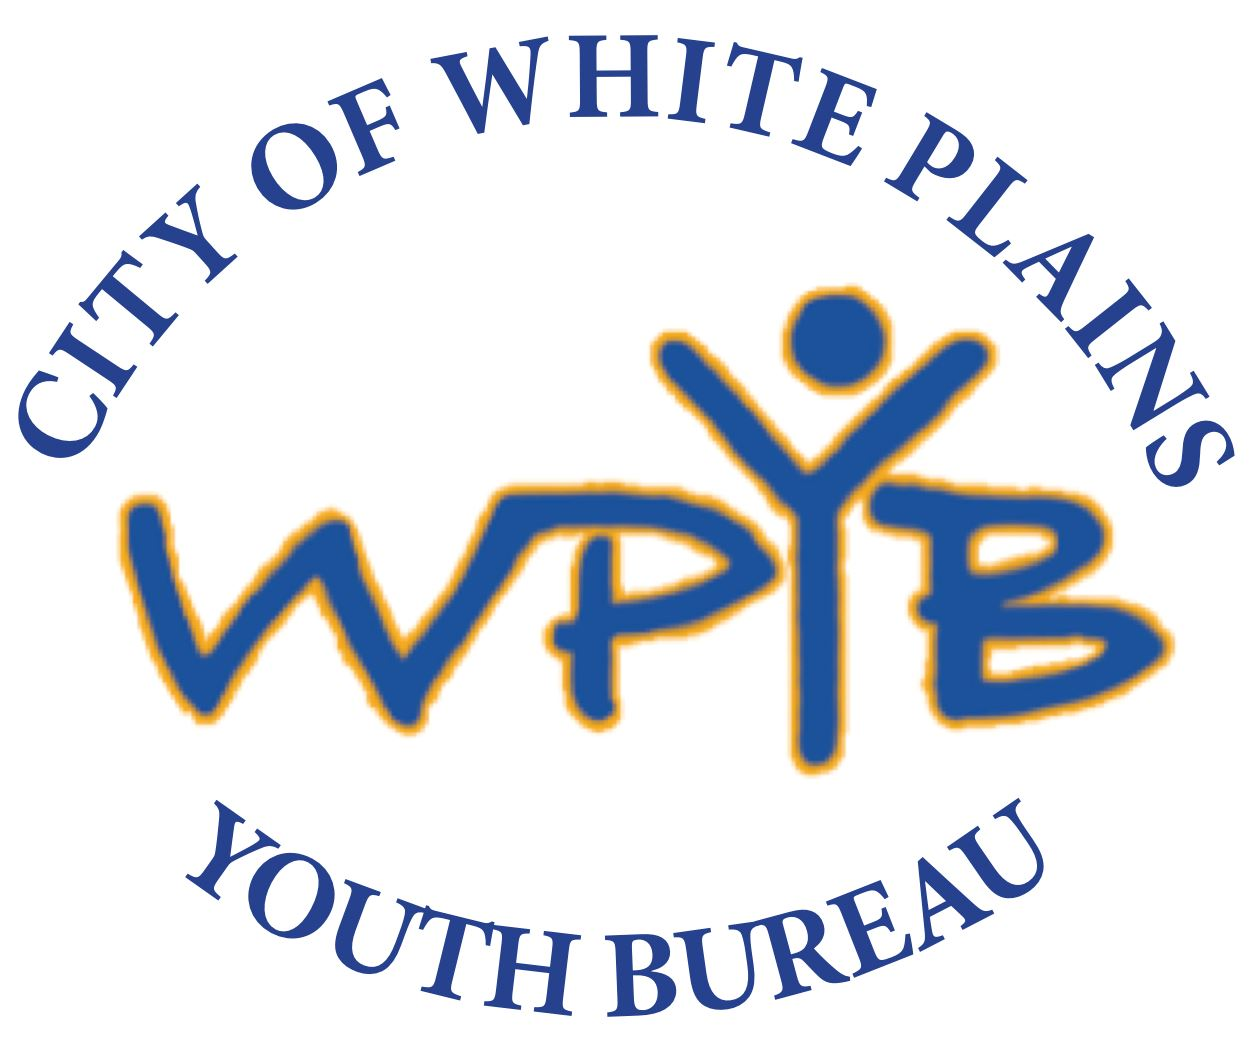 White Plains Youth Bureau